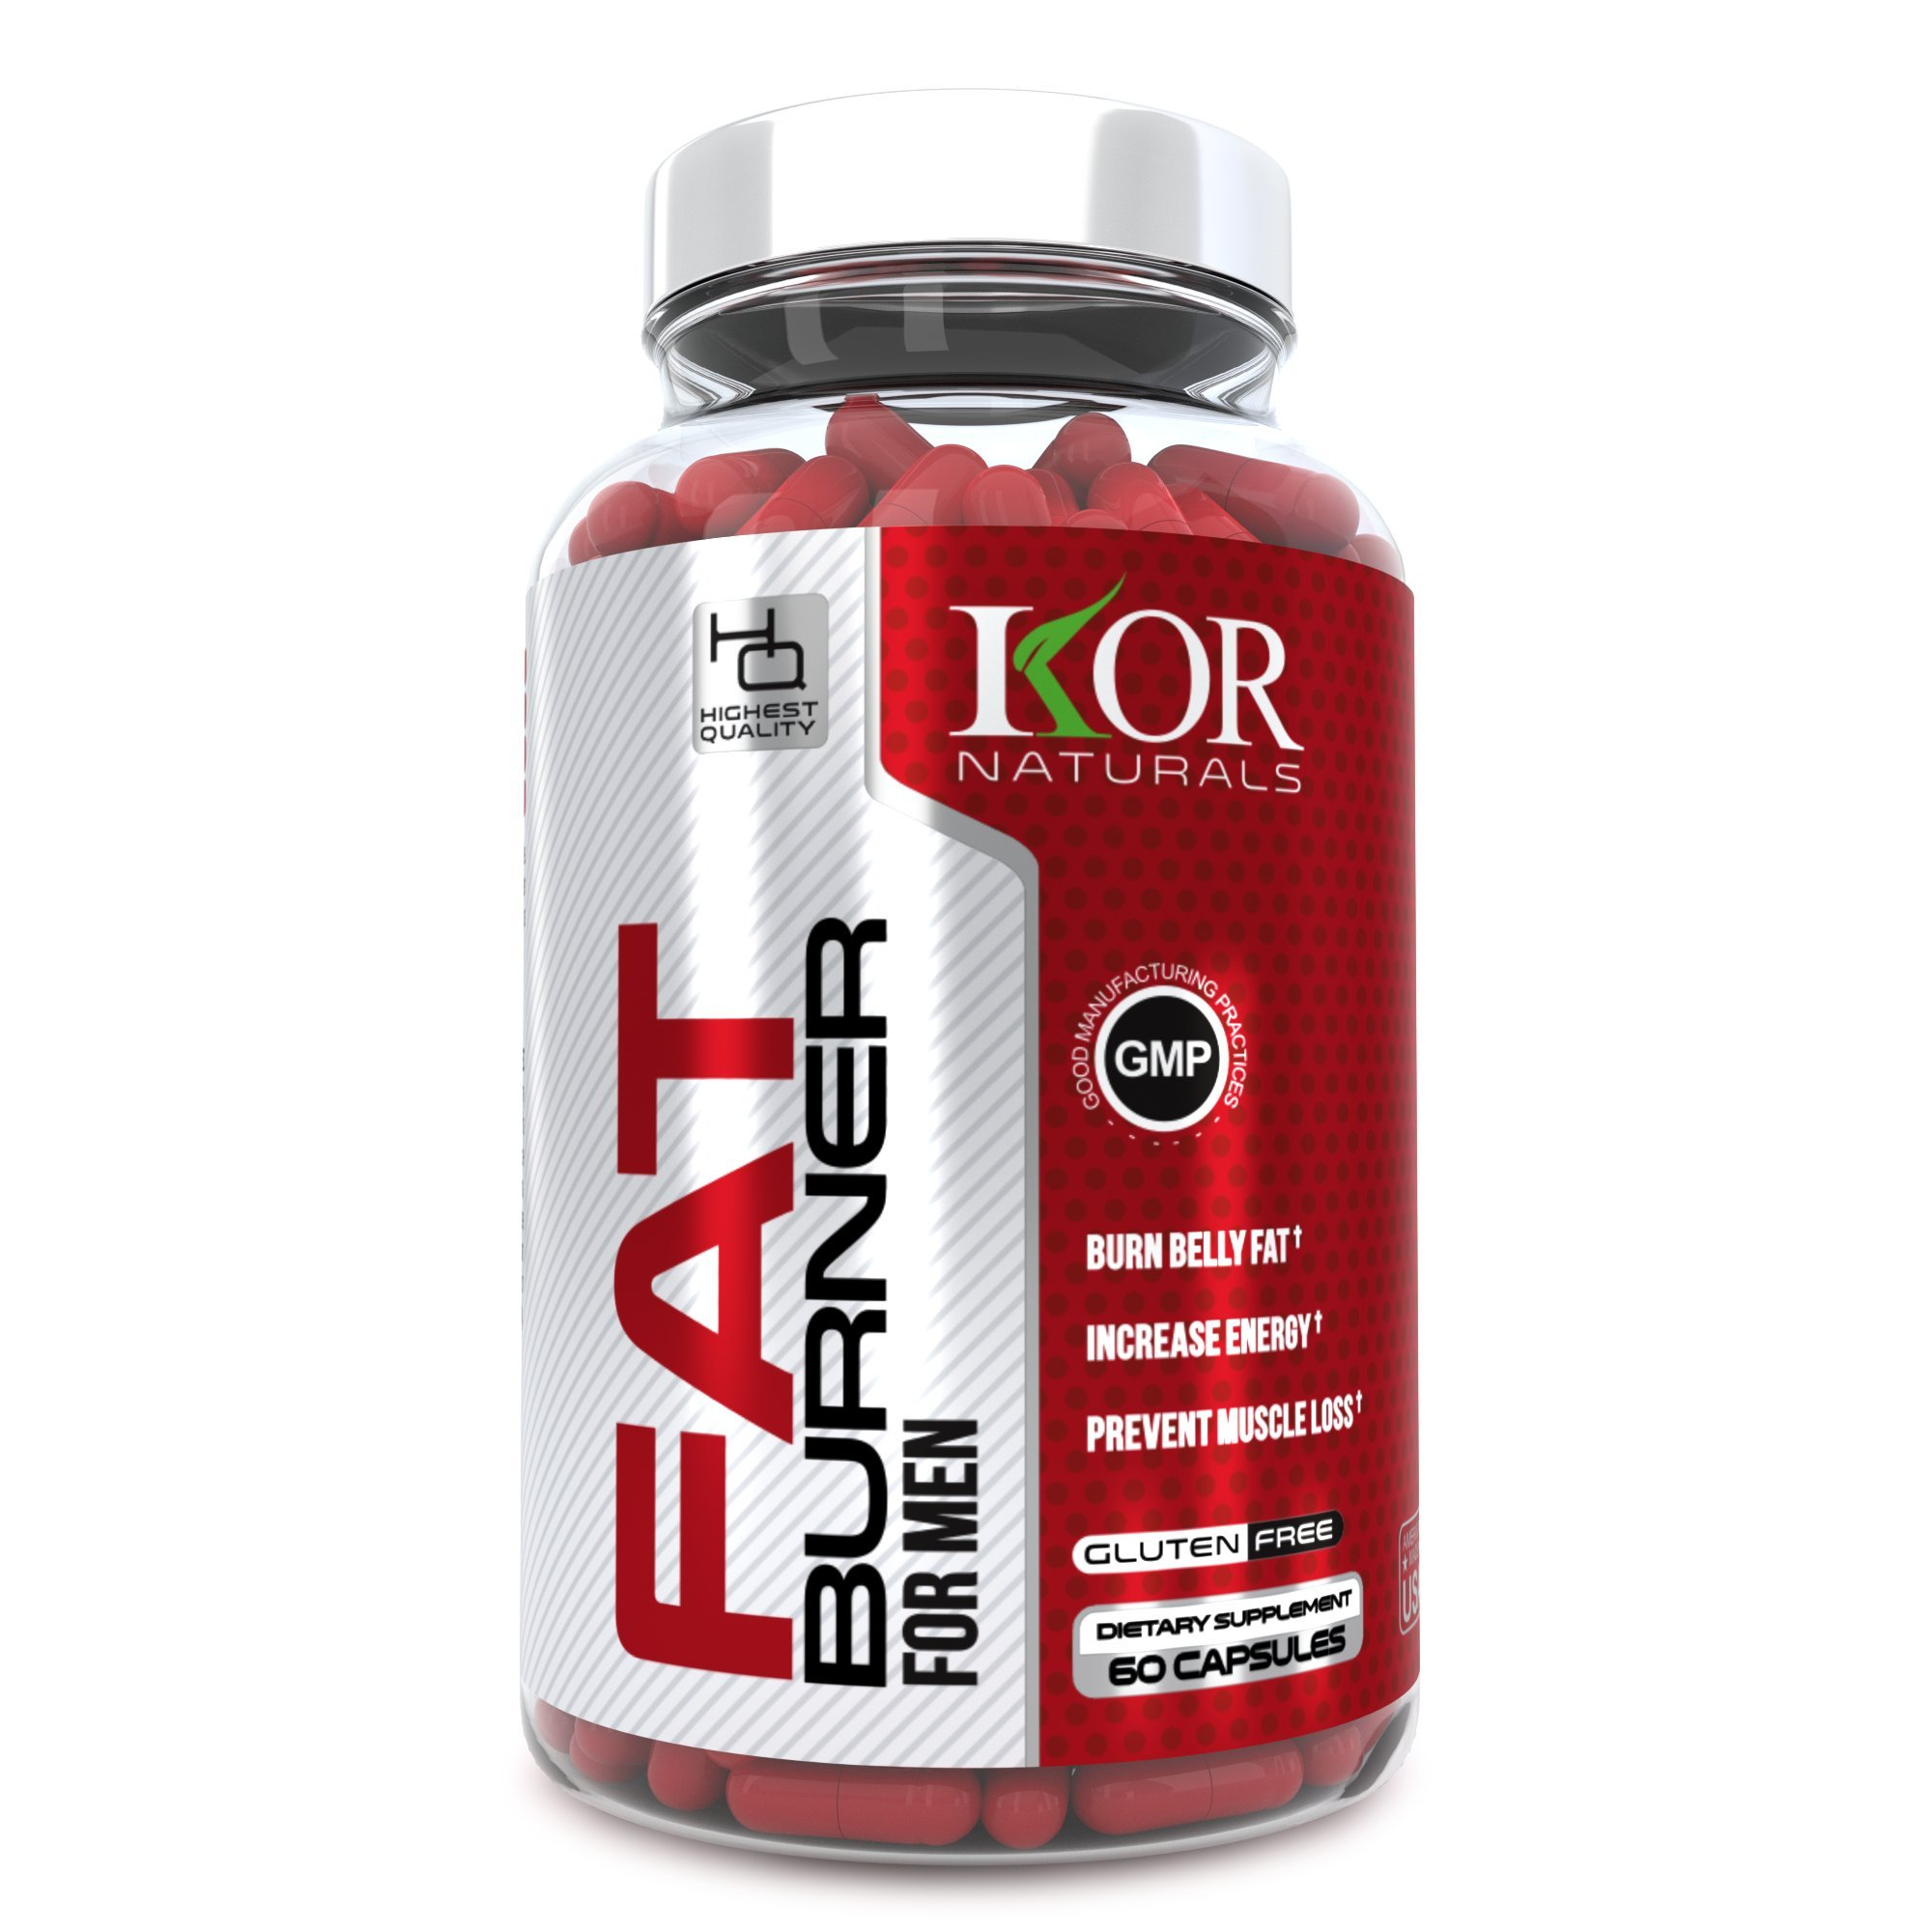 KOR - Thermogenic Fat Burner Pills for Men - Control Your Appetite & Burn Fat with Our Weight Loss Diet Supplement - Guaranteed Results - 60 caps by KOR Naturals